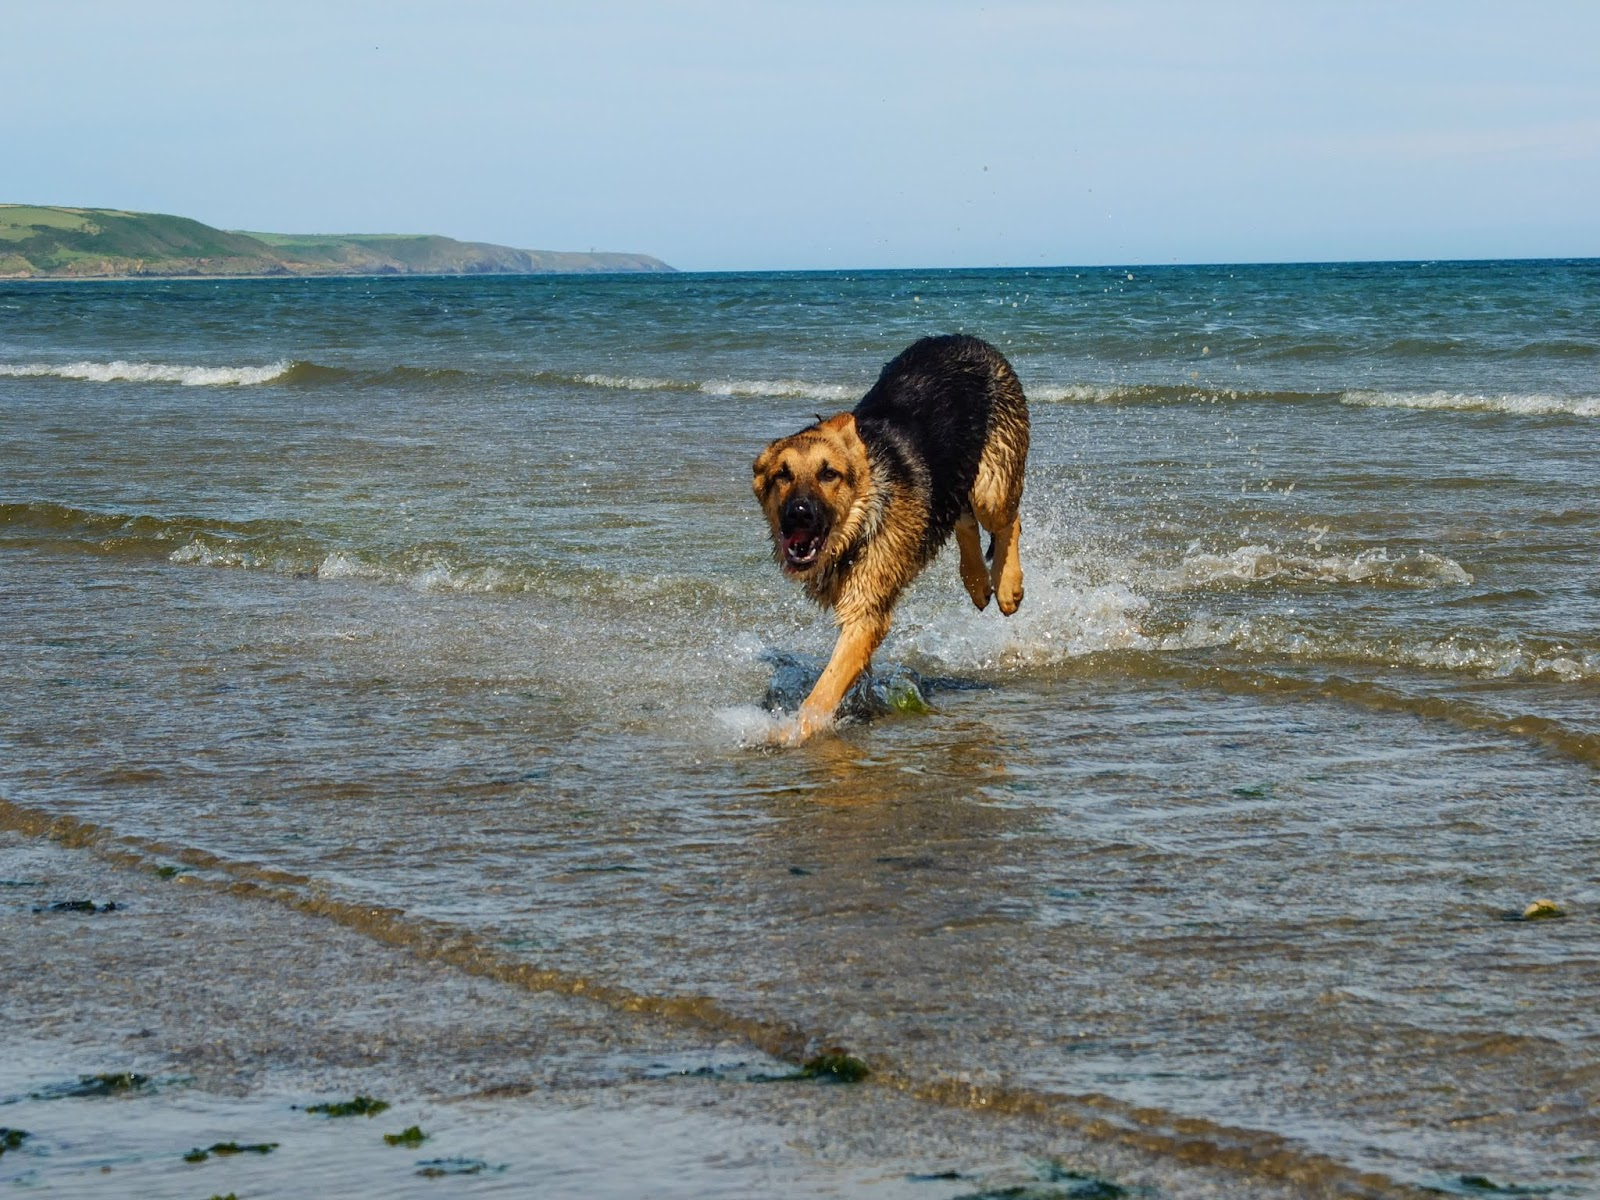 A giddy German Shepherd pup running on the beach and water.